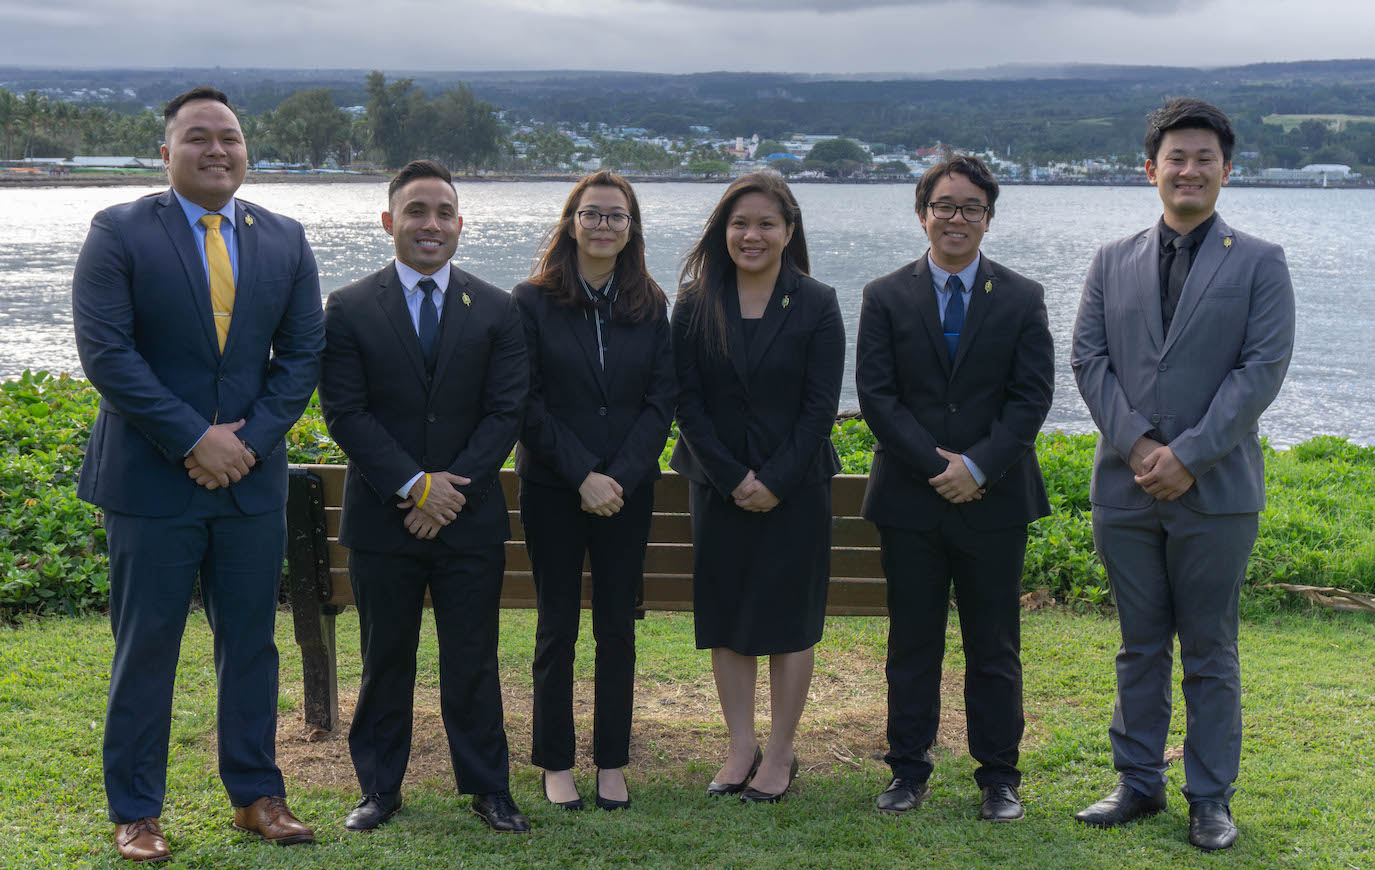 Some very well dressed, newly minted pharmacists at Hilo bay.